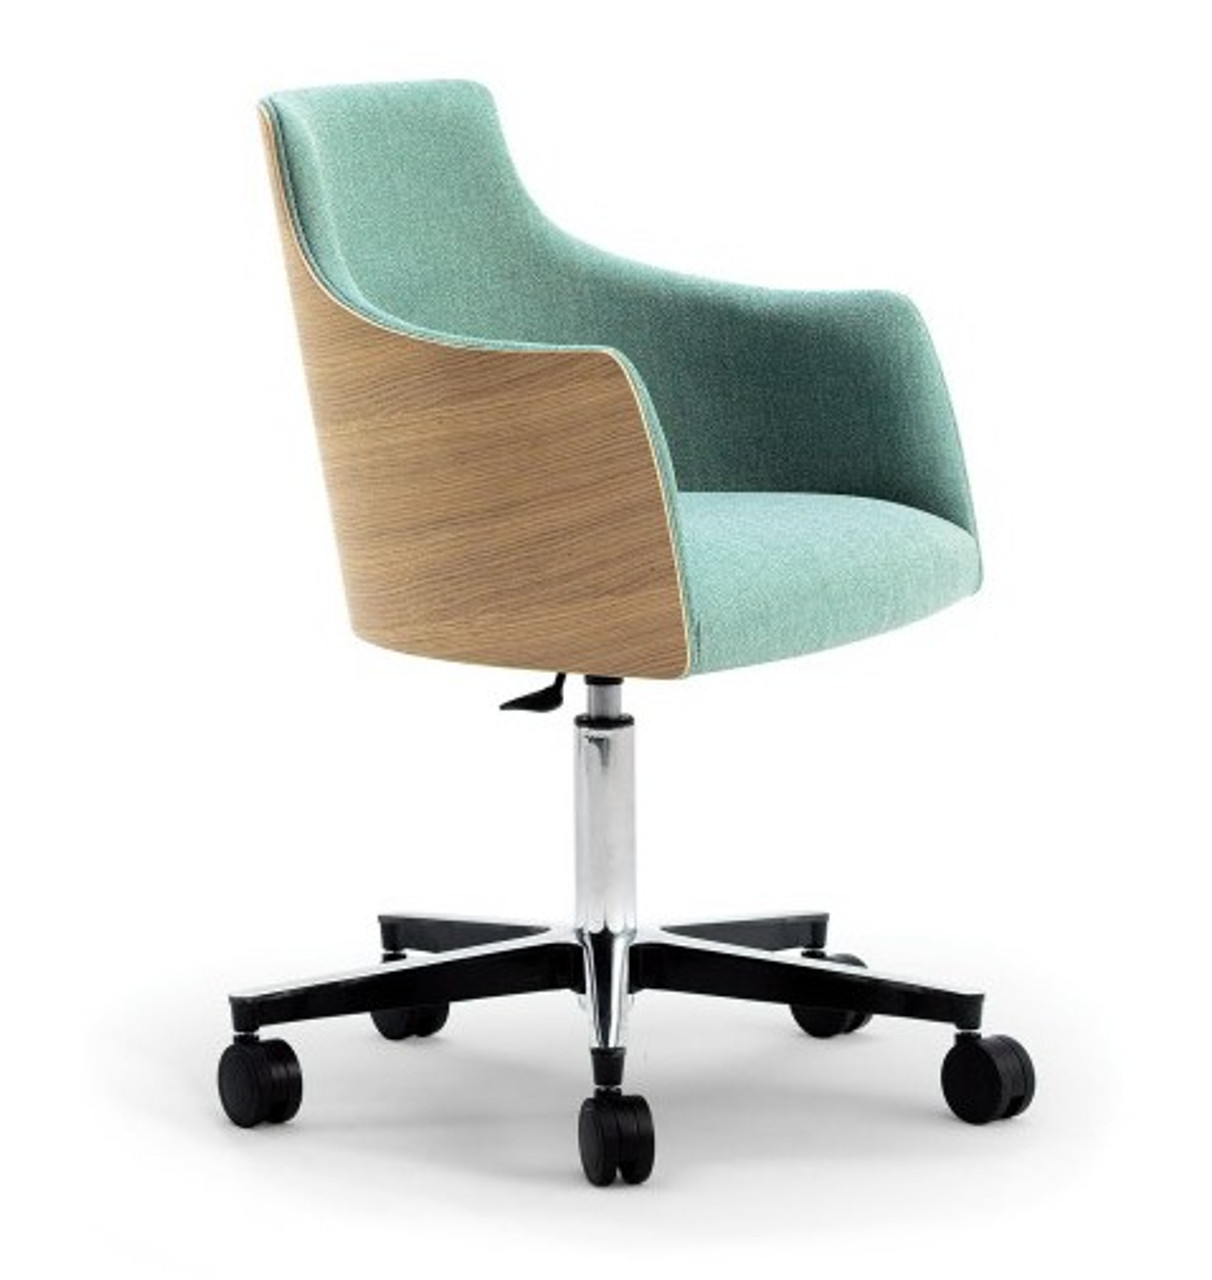 Cape Furniture Albert One Mid Century Office Chair With Wood Back Shell